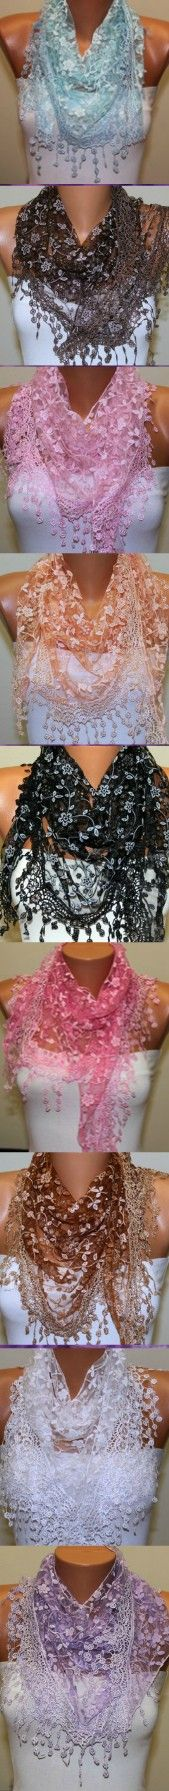 Incredibly look beautiful scarves by fatwoman,$19.00